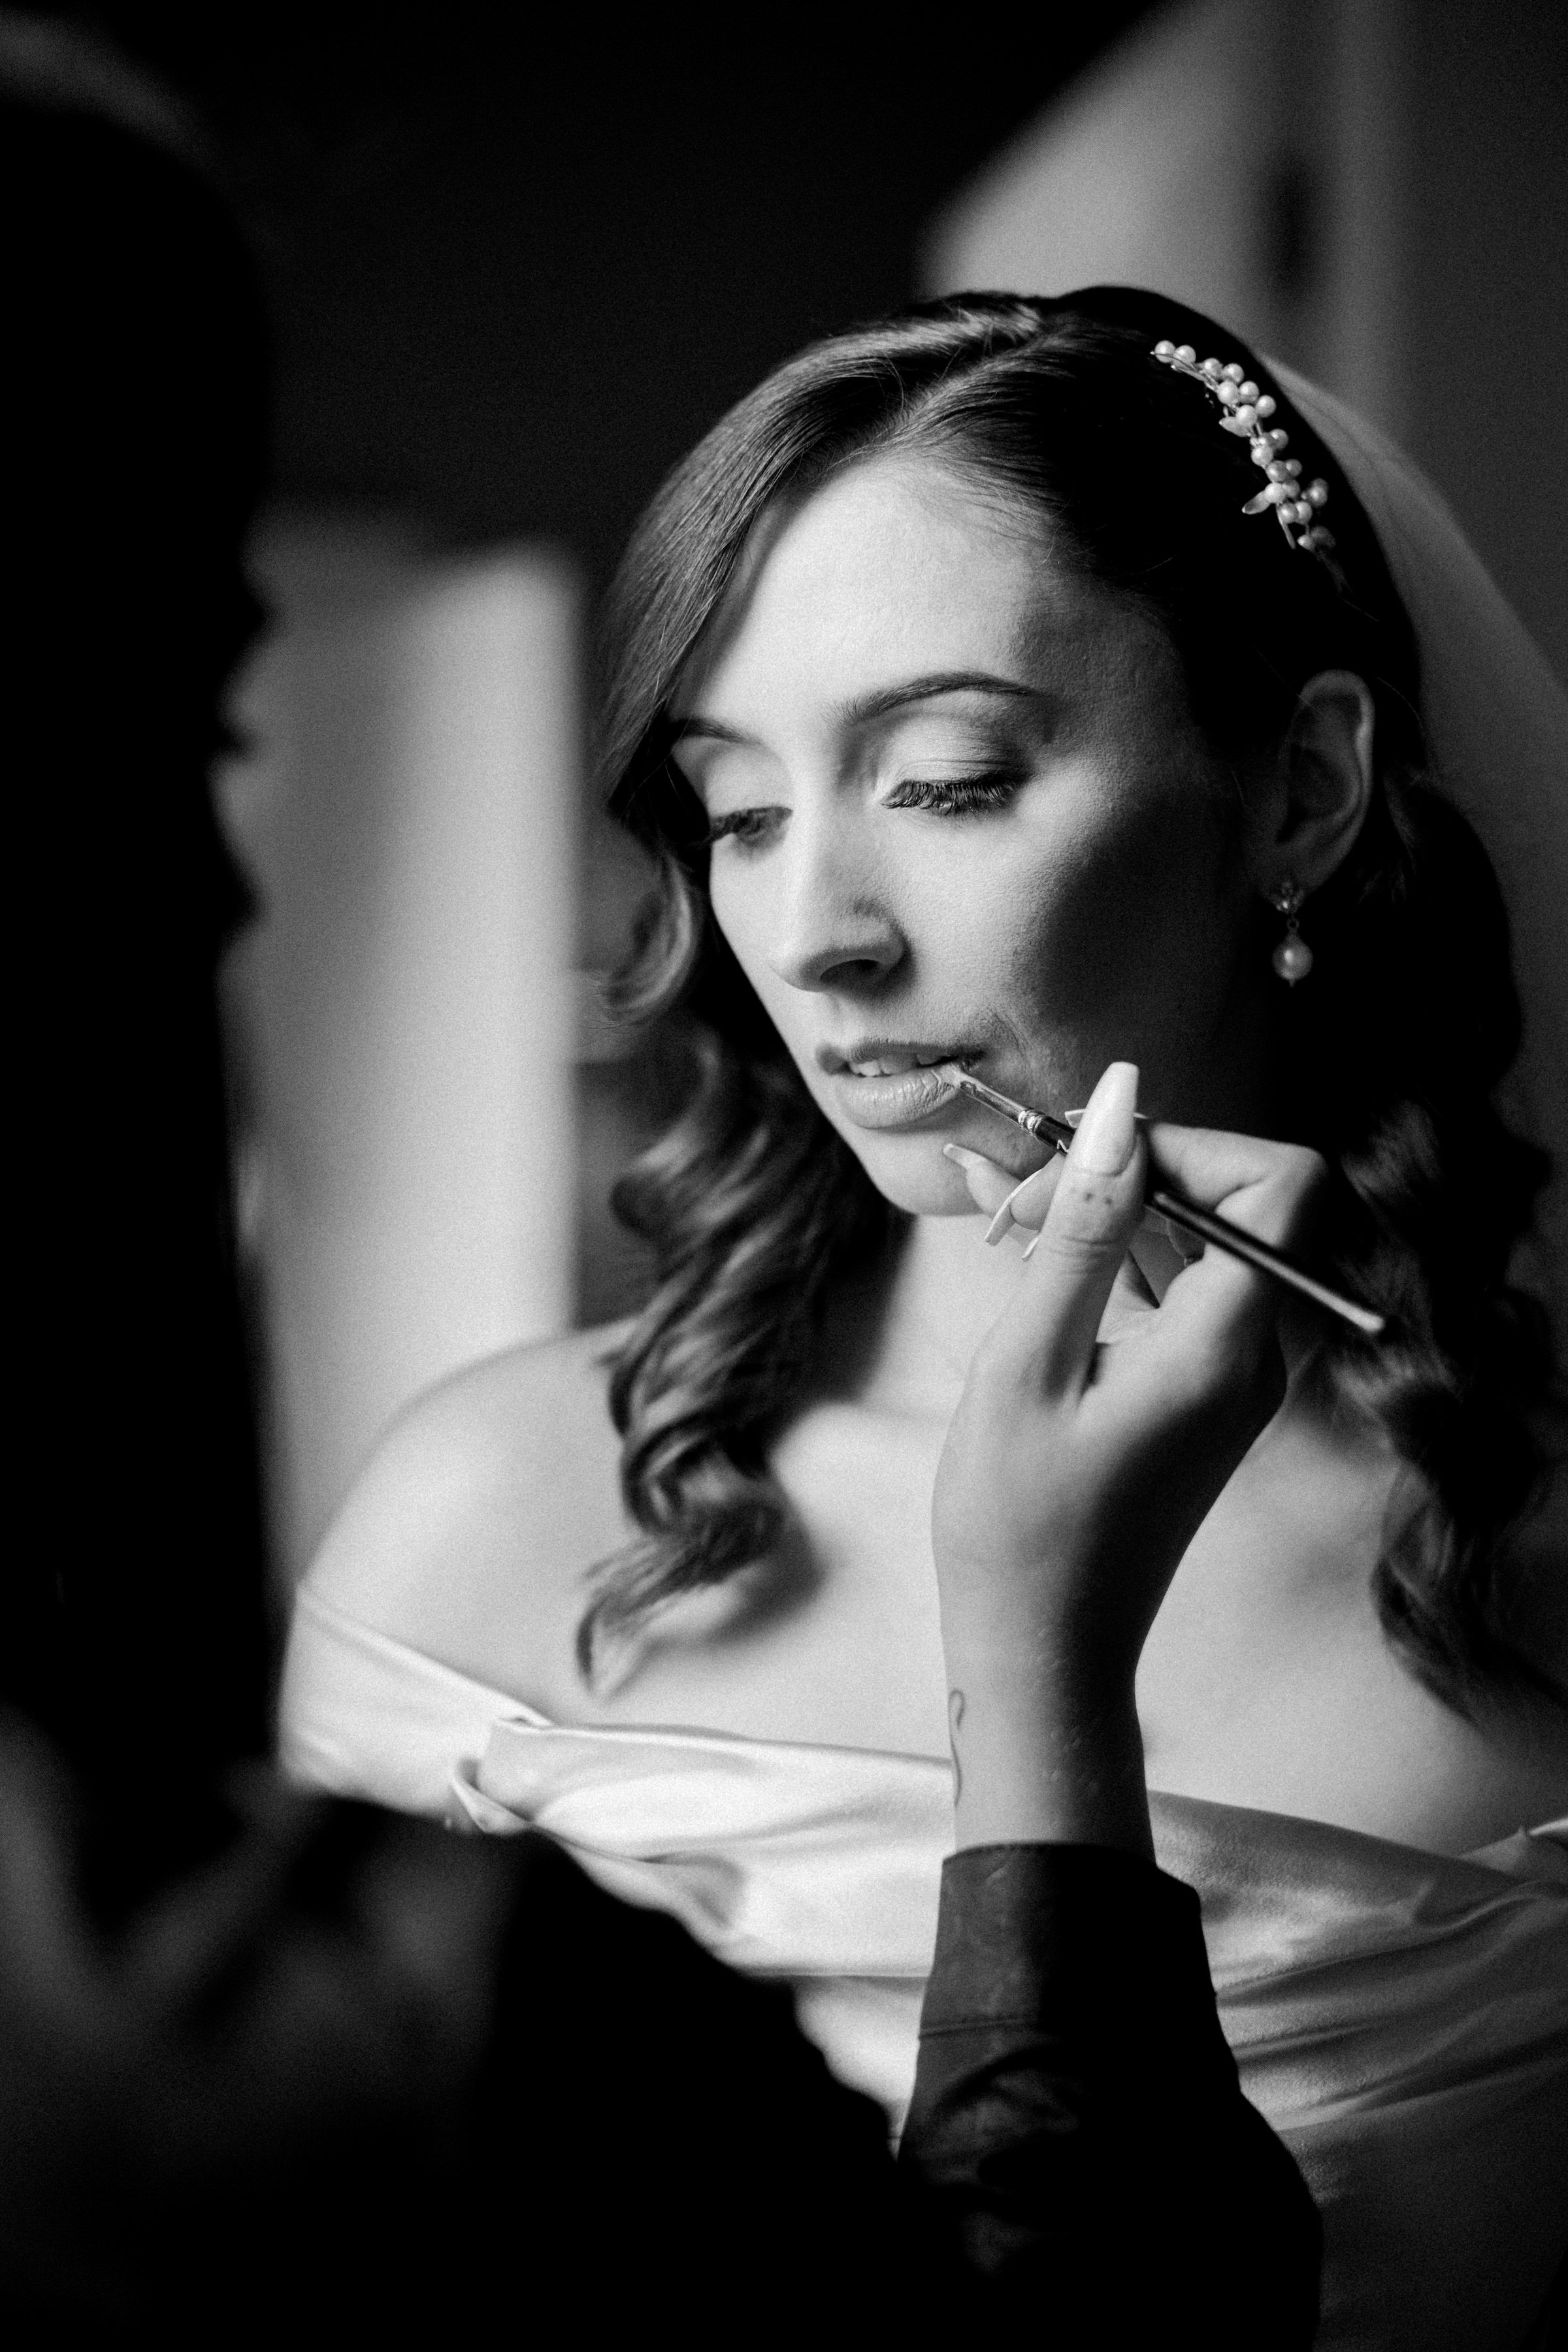 Bride having her lipstick applied - photo by White Cat Studio